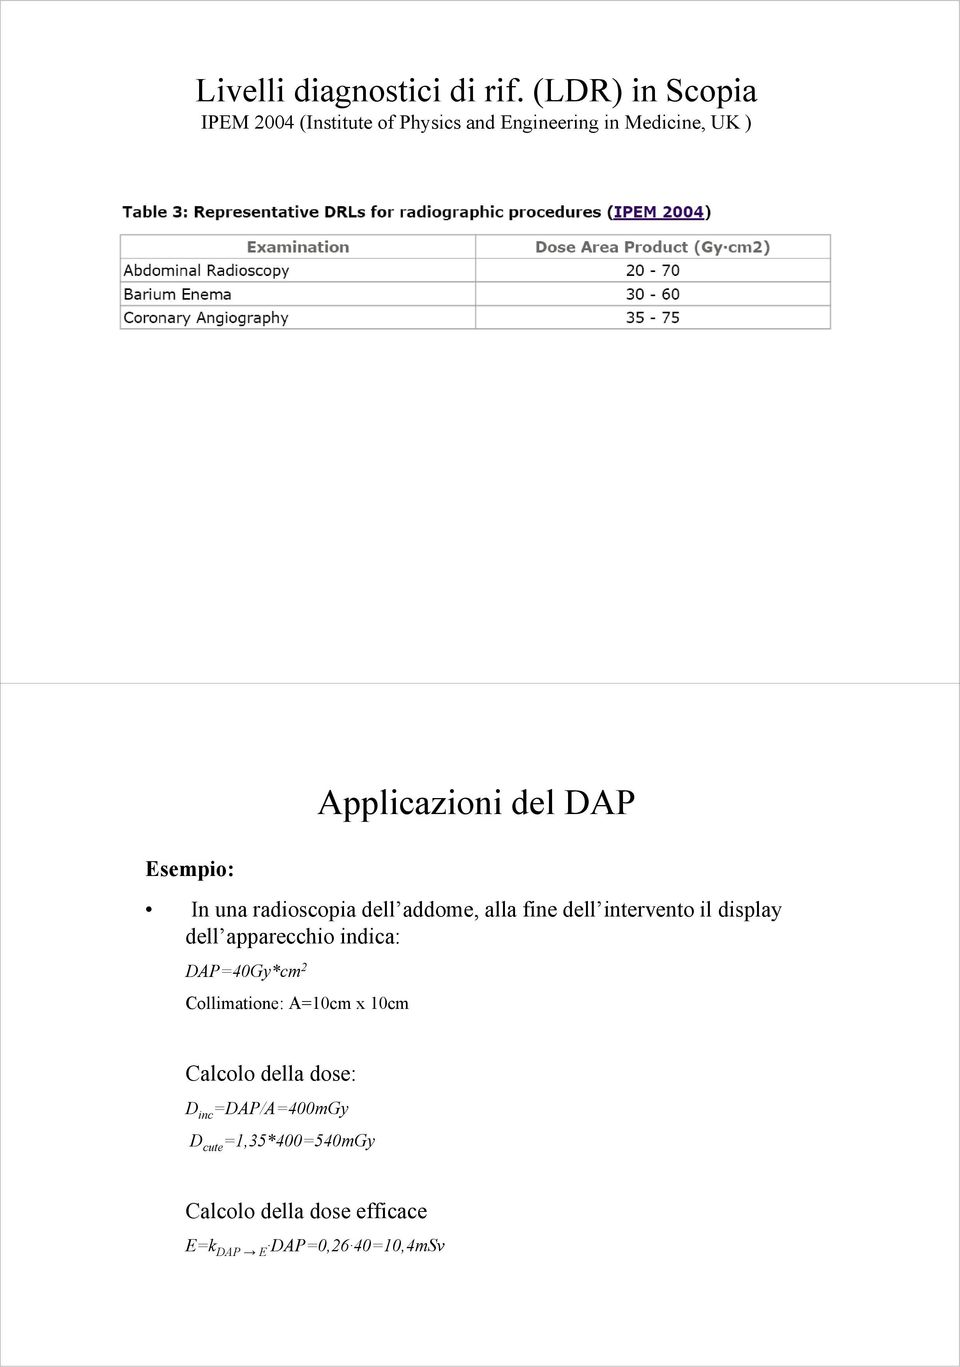 Applicazioni del DAP In una radioscopia dell addome, alla fine dell intervento il display dell